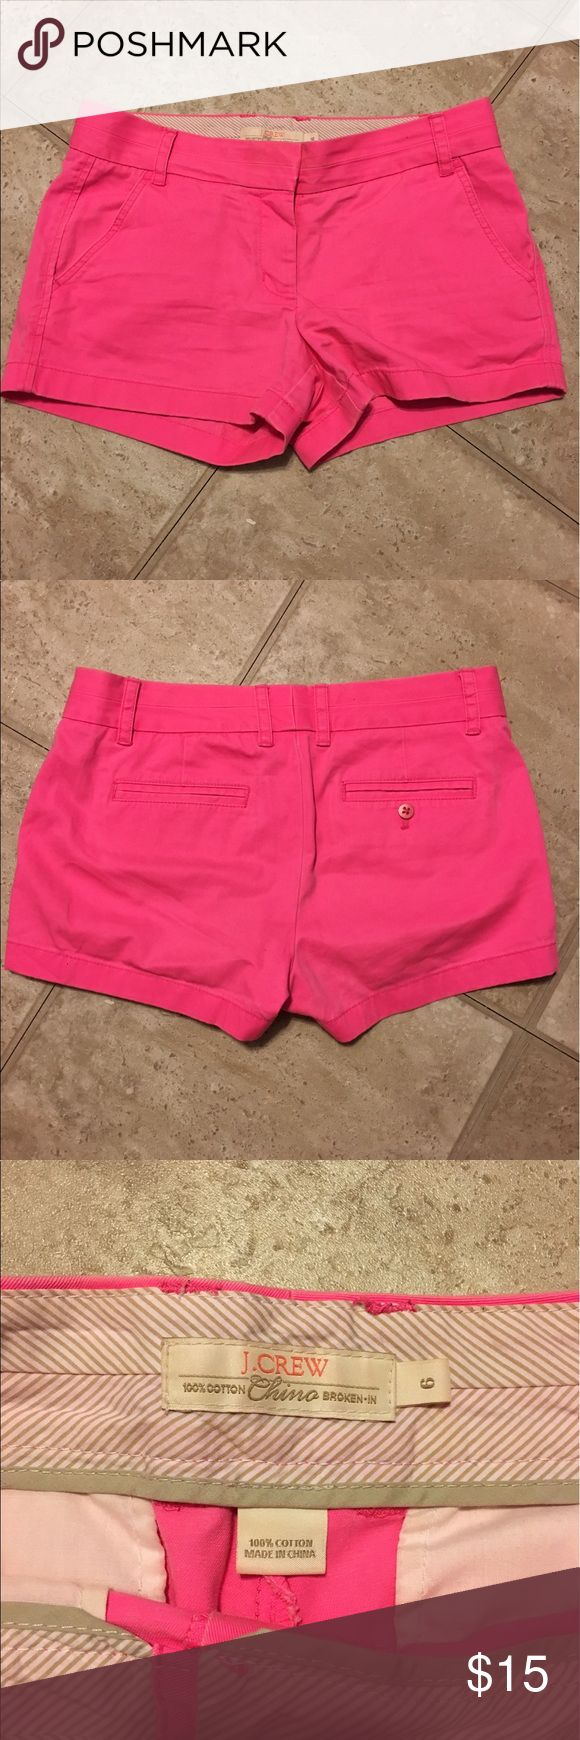 J. Crew Hot Pink Shorts EUC hot pink shorts. Light fading but they were made to look that way. Bought from another posher but they didn't fit me. J. Crew Shorts